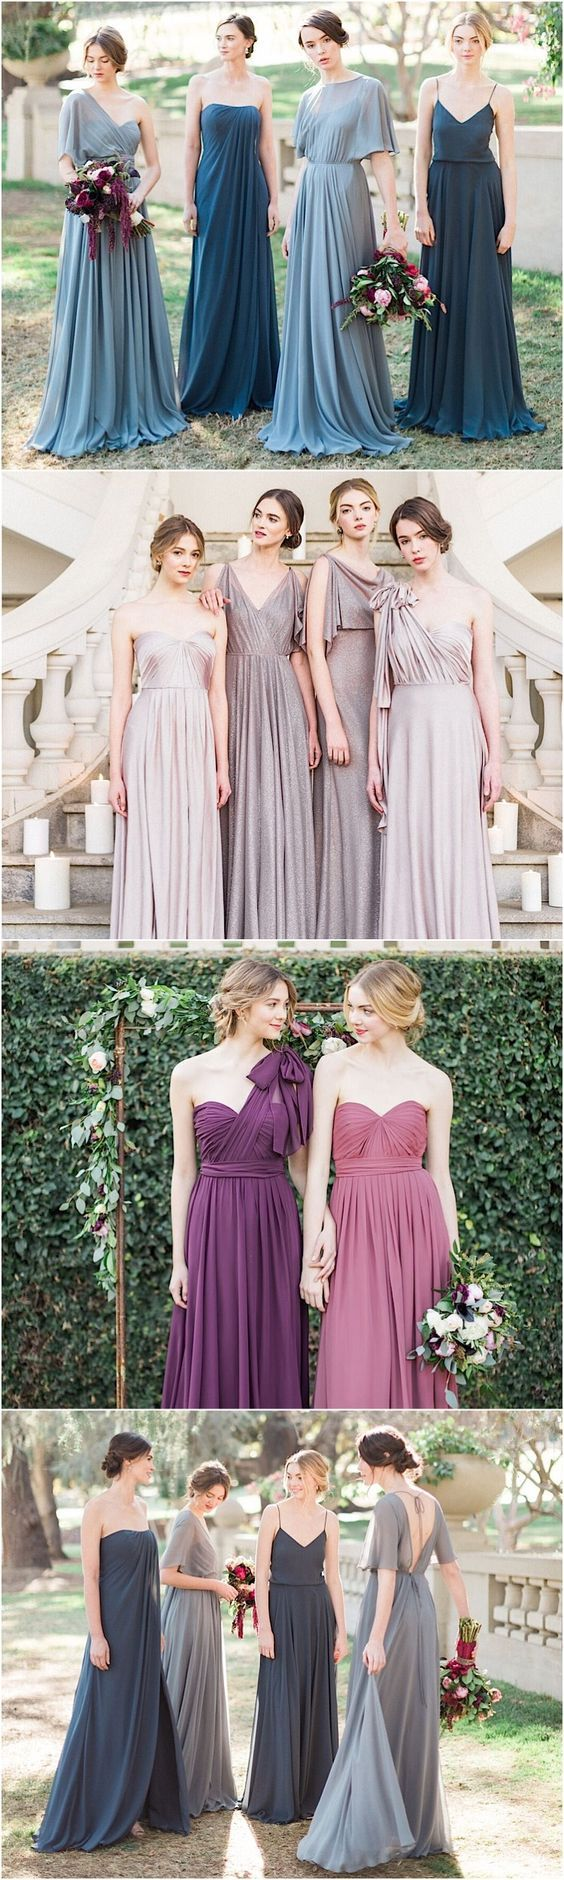 Gorgeous bridesmaid dresses by Jenny Yoo: